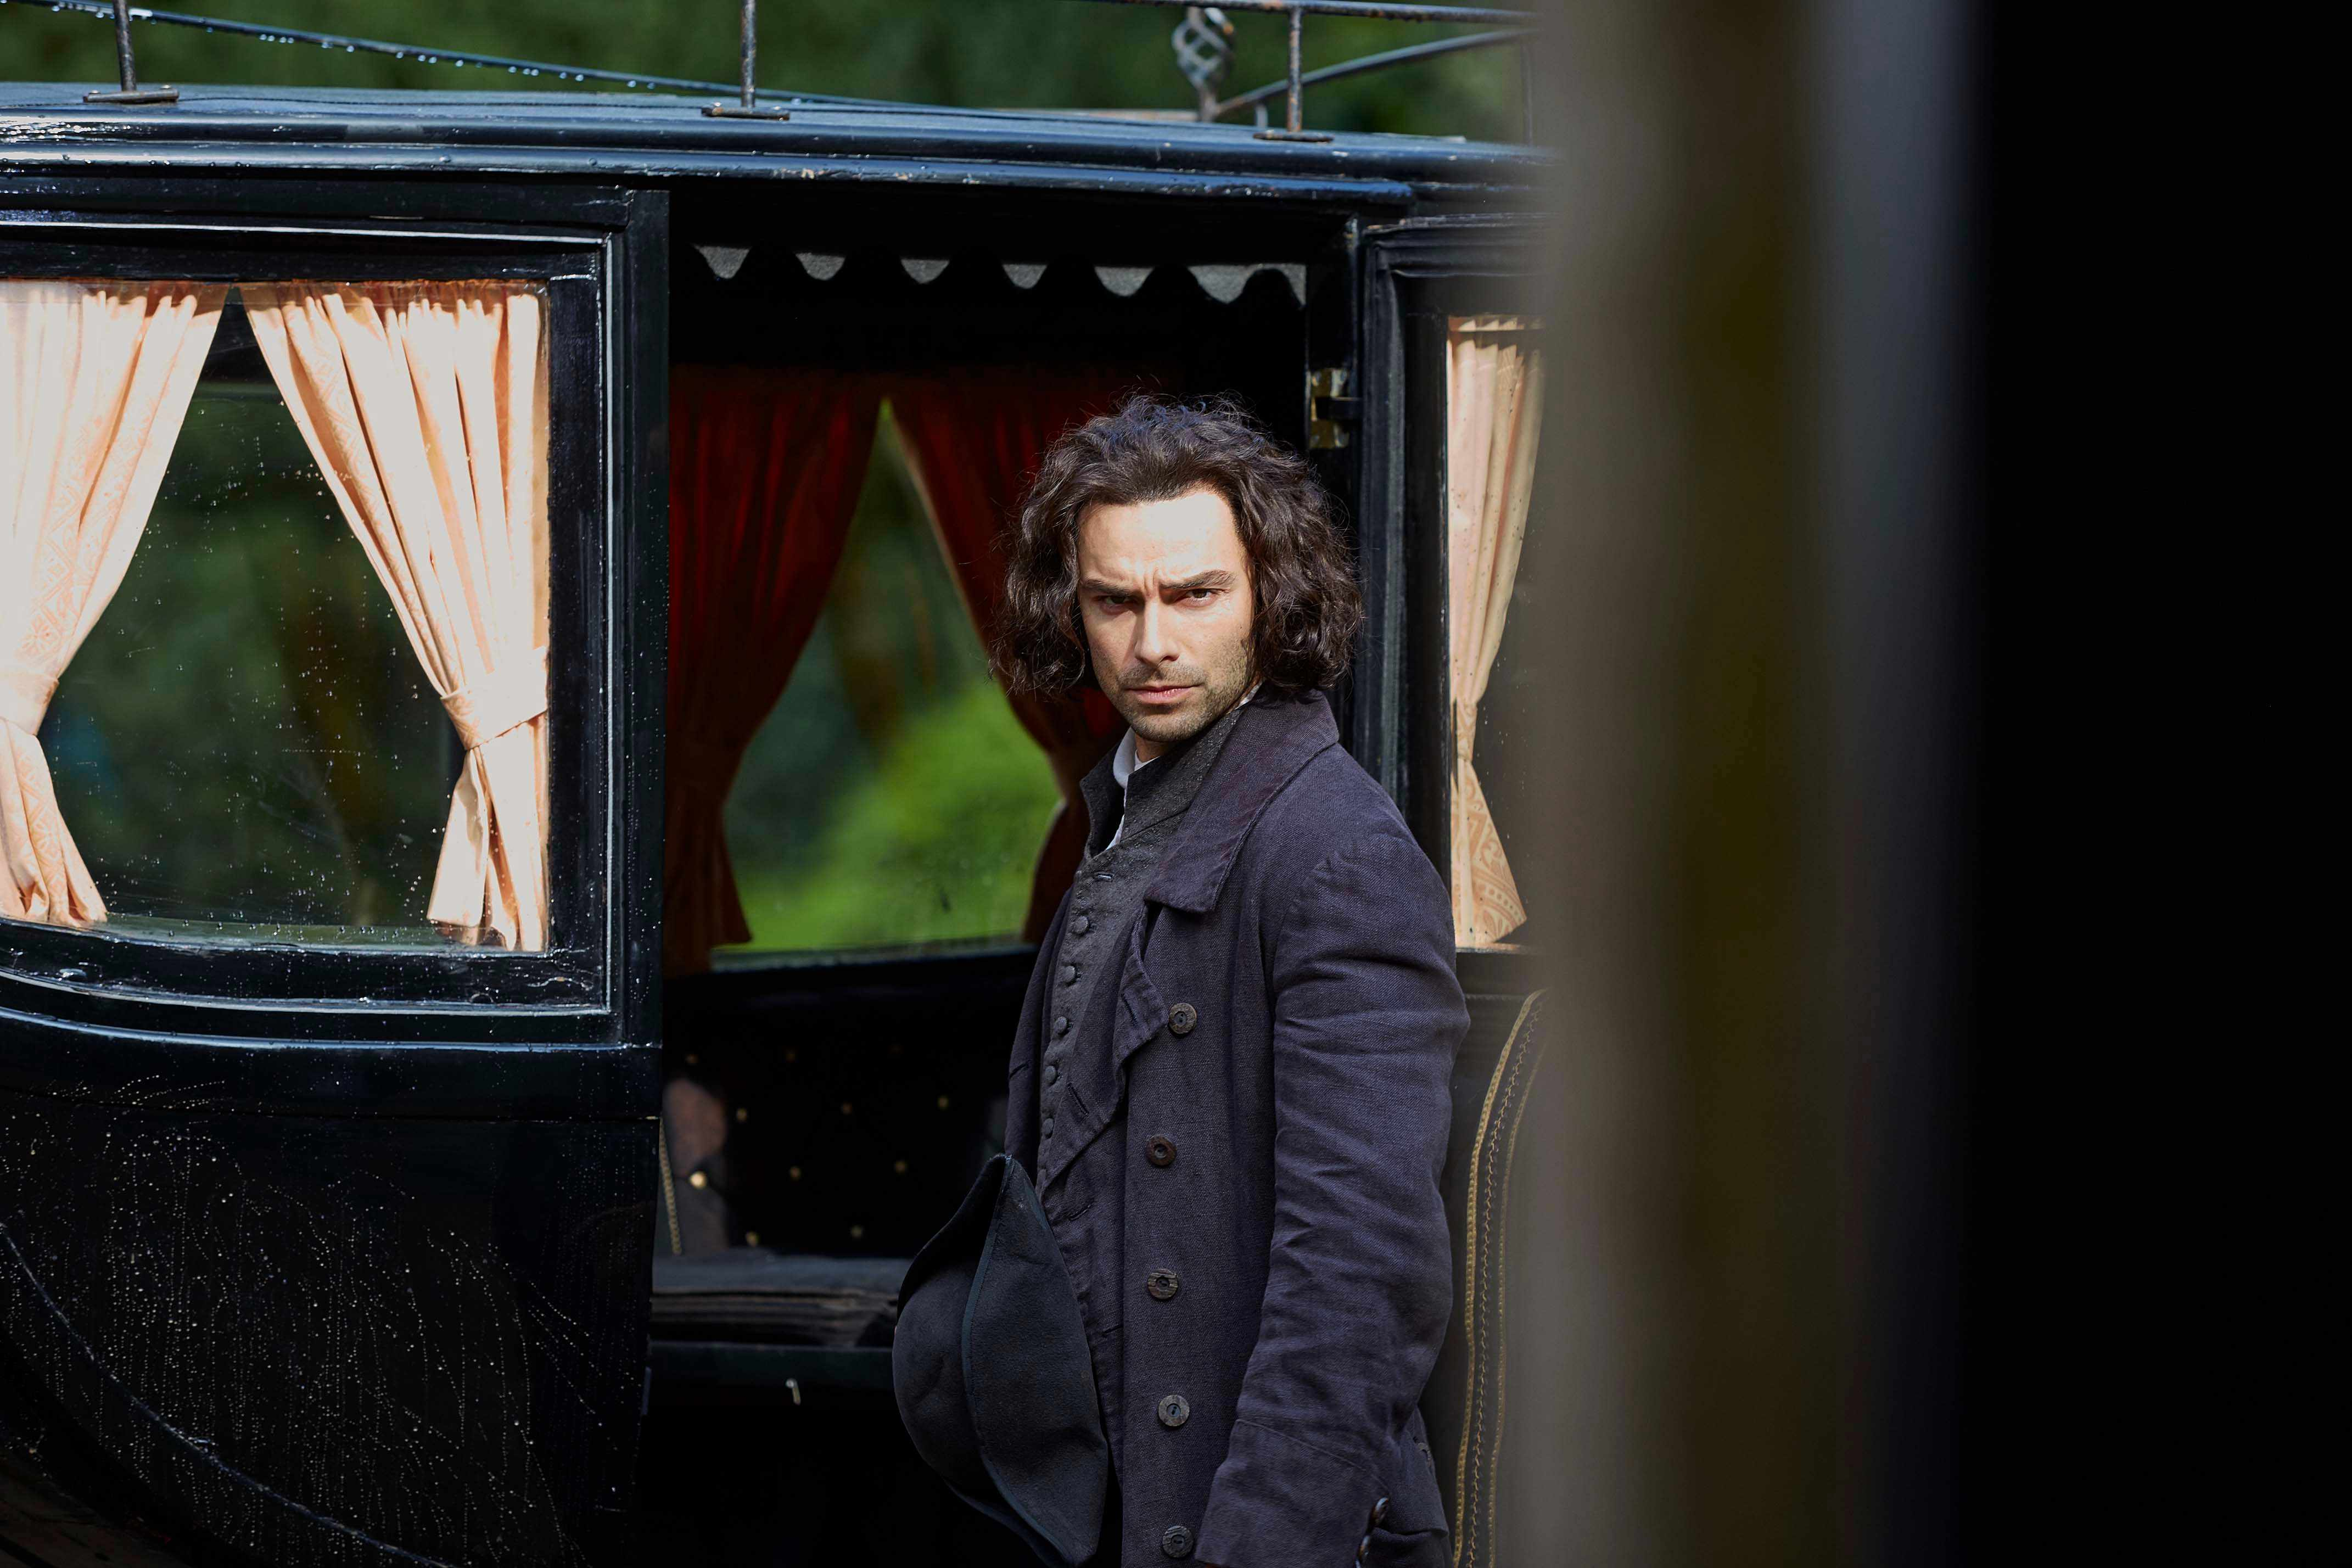 WARNING: Embargoed for publication until 00:00:01 on 10/07/2018 - Programme Name: Poldark - Series 4 - TX: n/a - Episode: Poldark S4 - EP6 (No. 6) - Picture Shows: ***EMBARGOED TILL 10TH JULY 2018*** Ross Poldark (AIDAN TURNER) - (C) Mammoth Screen  - Photographer: Mike Hogan